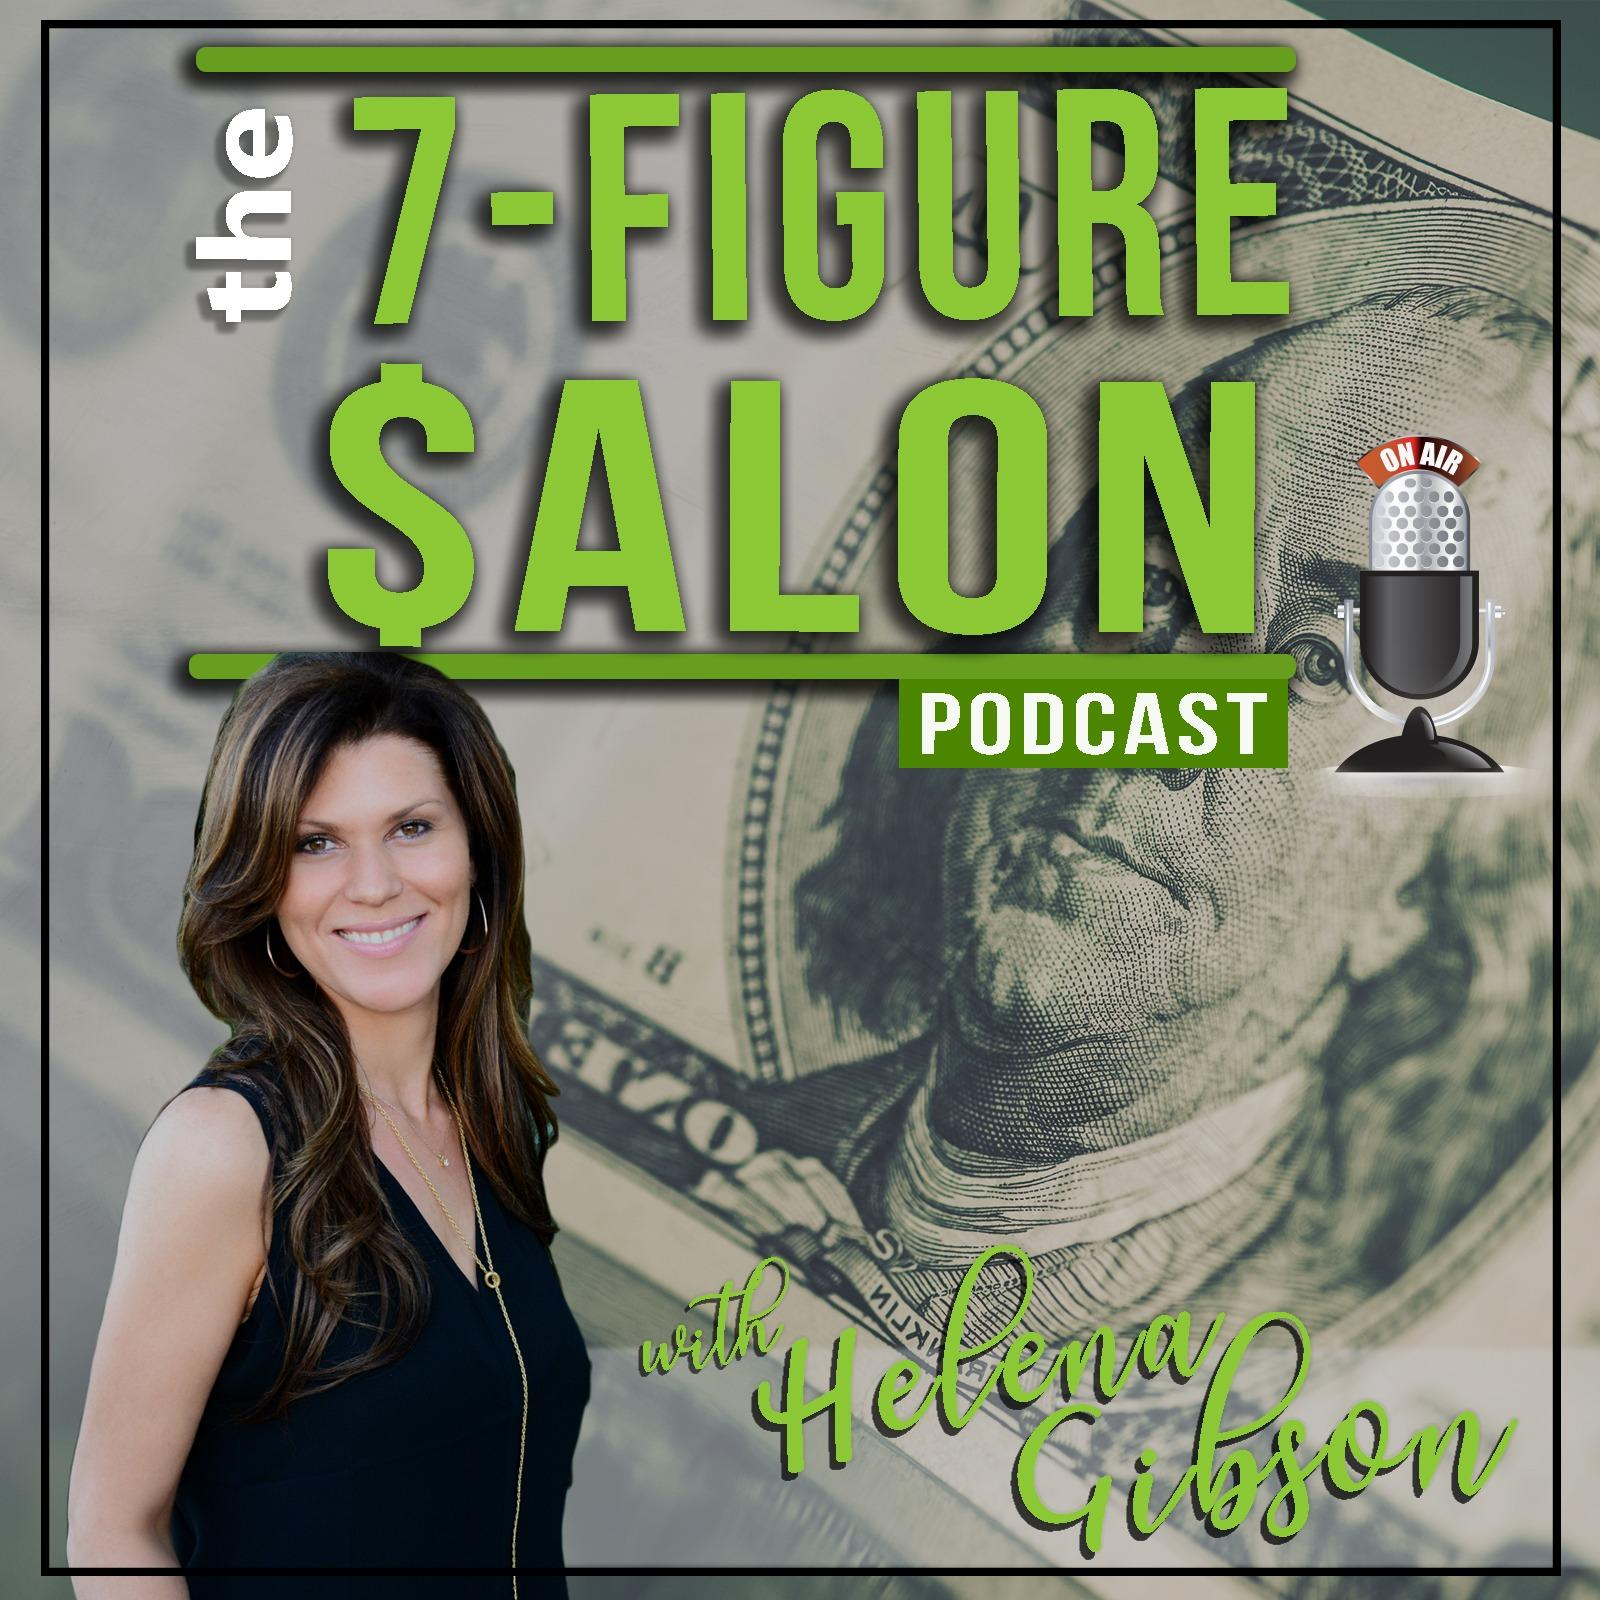 the 7-Figure Salon Podcast